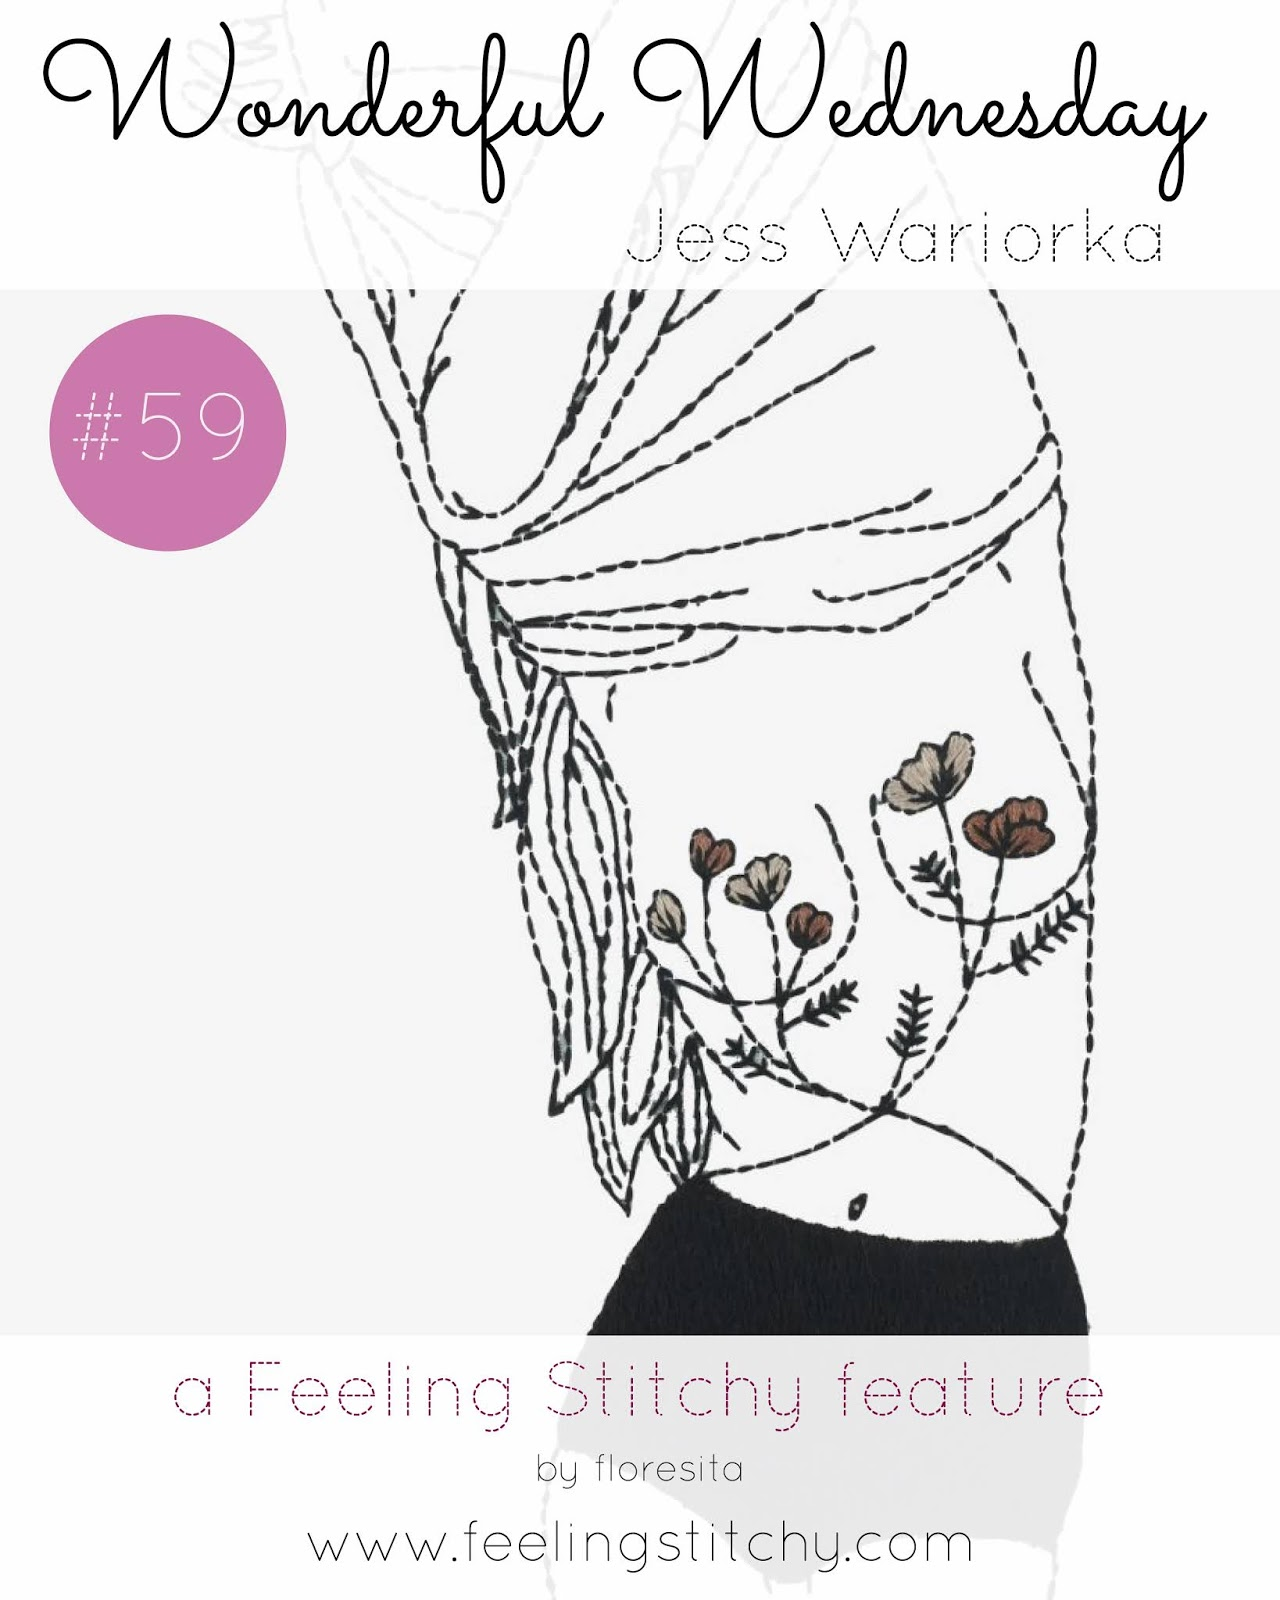 Wonderful Wednesday 59 - Free In Bloom pattern by Jess Wariorka as featured by floresita on Feeling Stitchy